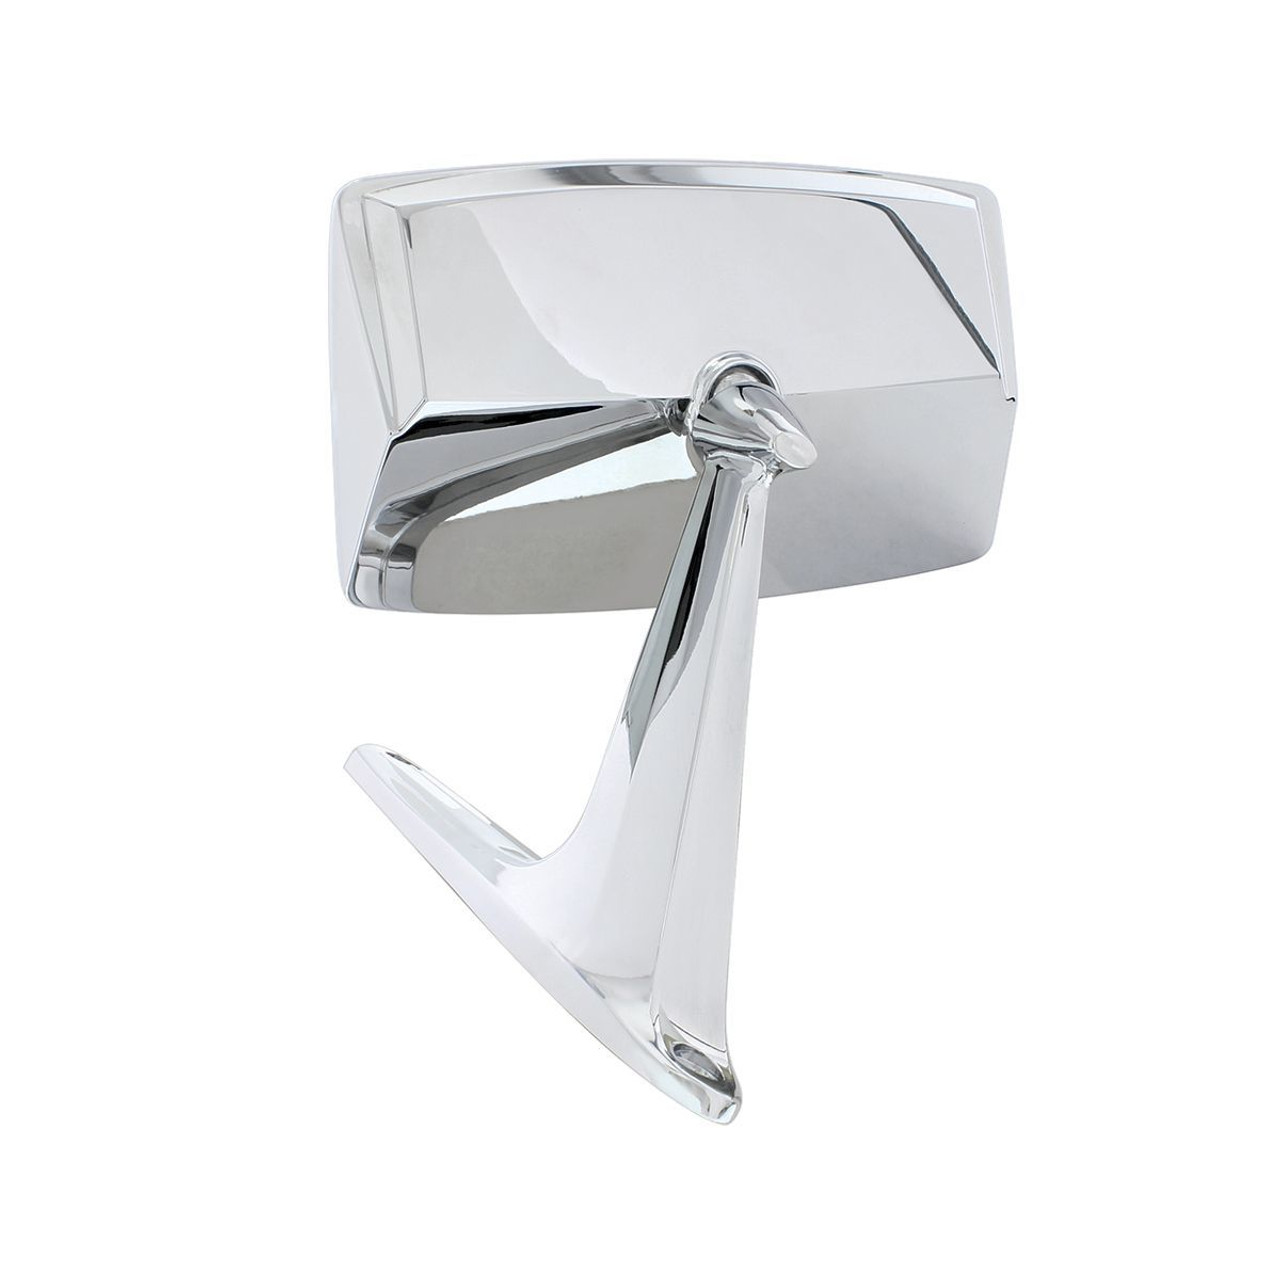 1967-68 Ford Mustang Standard Exterior Chrome Mirror